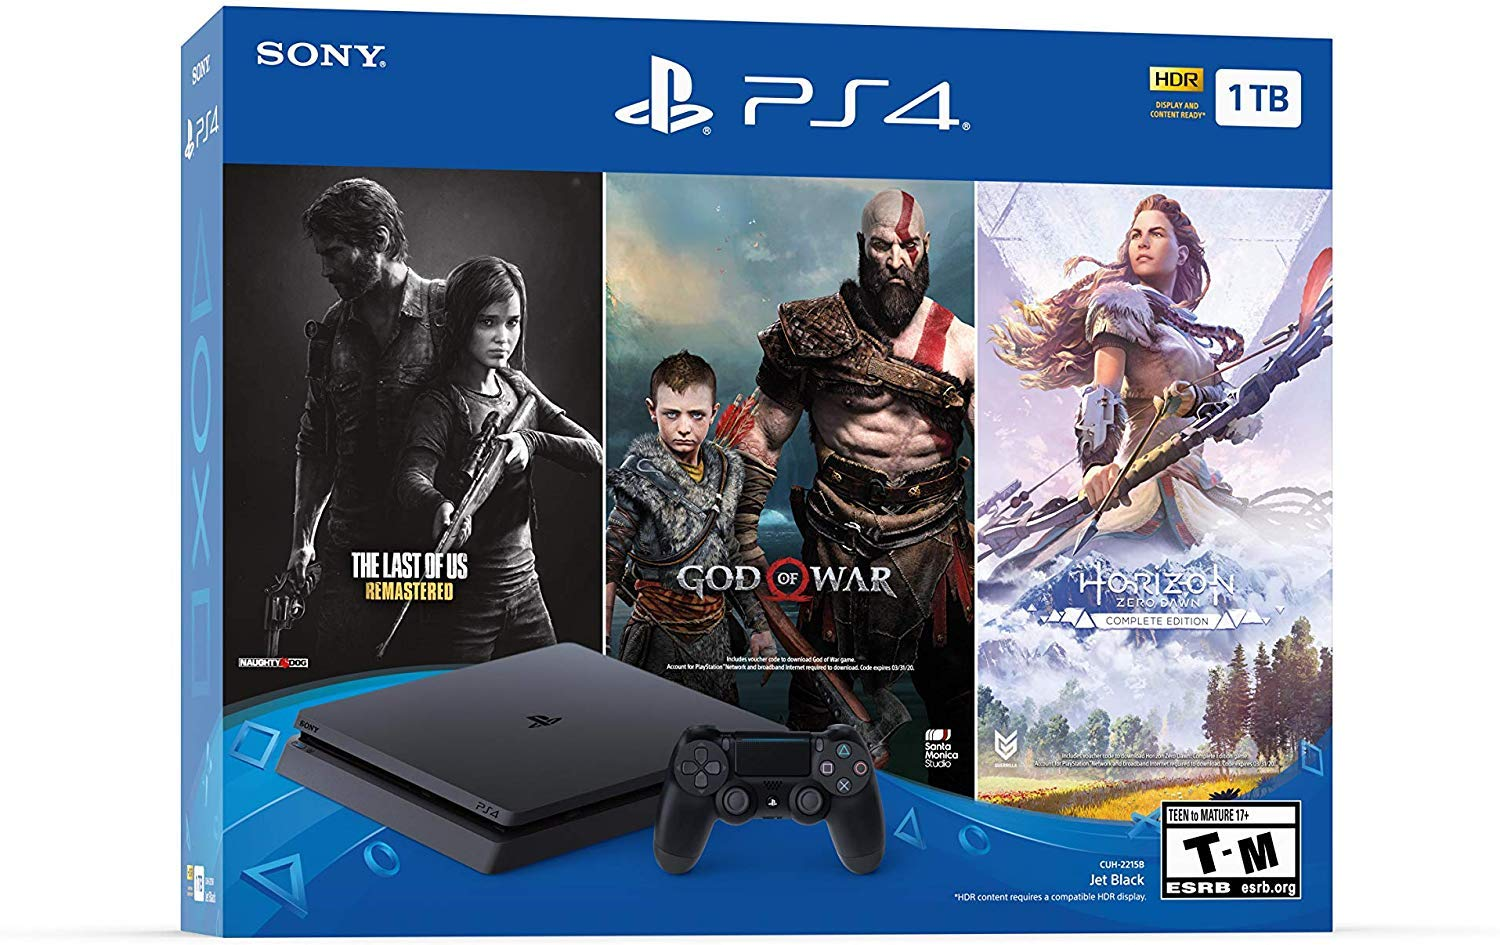 newest-flagship-sony-play-station-4-1tb-hdd-only-on-playstation-ps4-console-slim-bundle-included-3x-games-the-last-of-us-god-of-war-horizon-zero-dawn-1tb-hard-drive-incredible-games-je